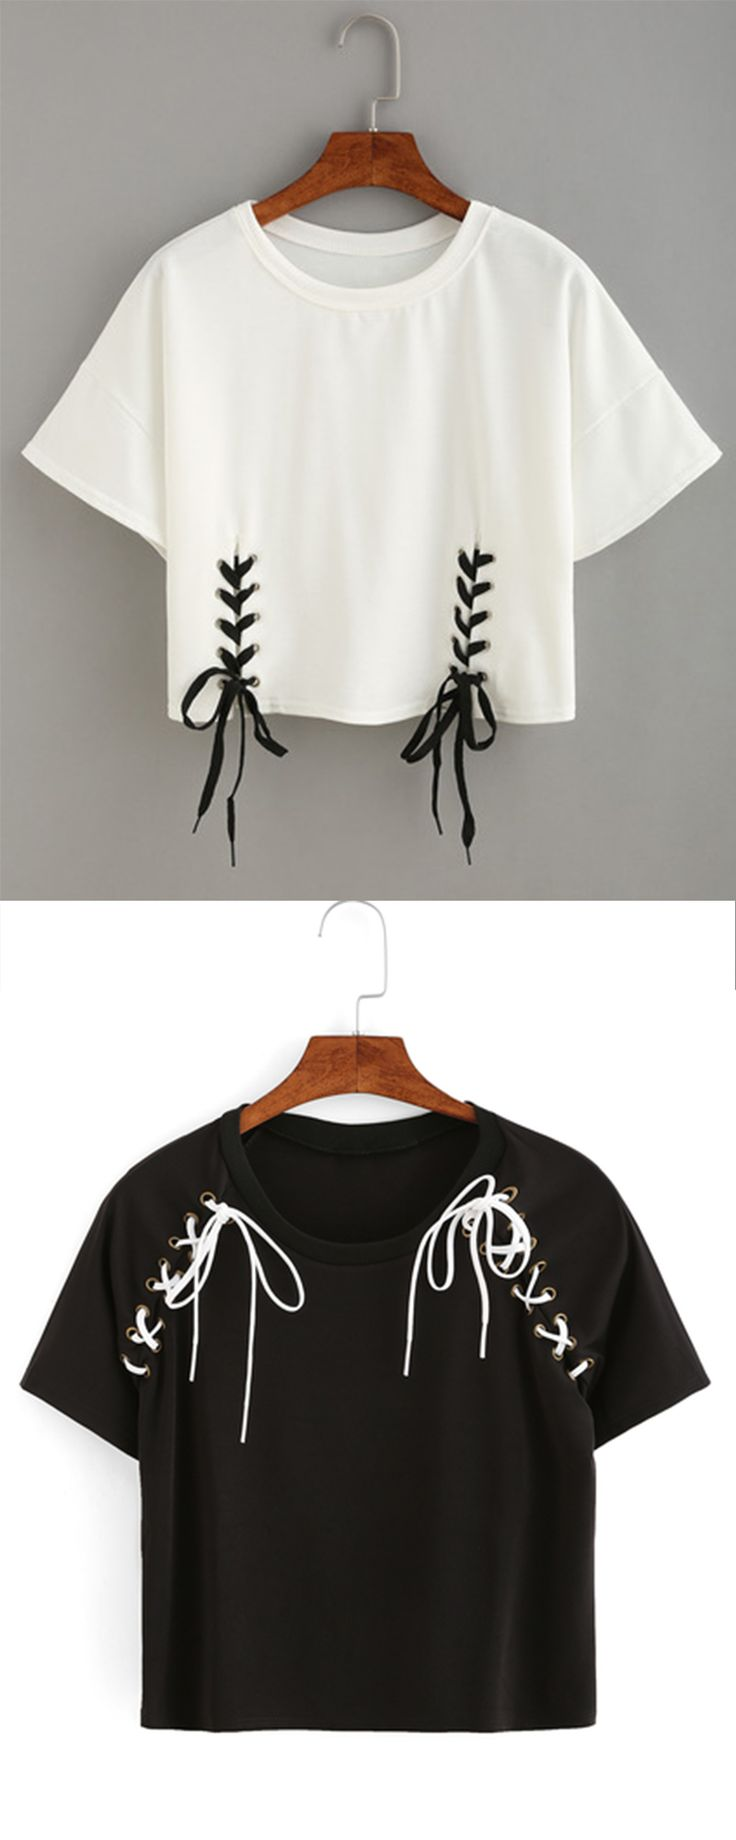 25 best ideas about diy shirt on pinterest cutting for Diy t shirt design